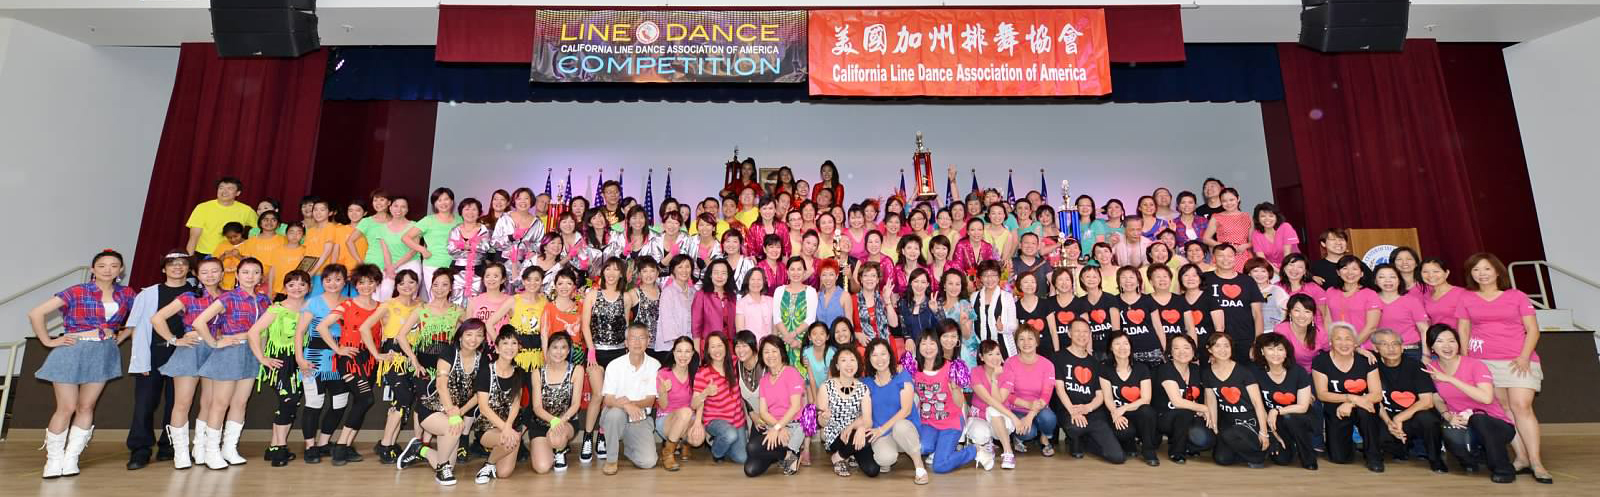 CLDAA Line Dance Competition 6/28/2015